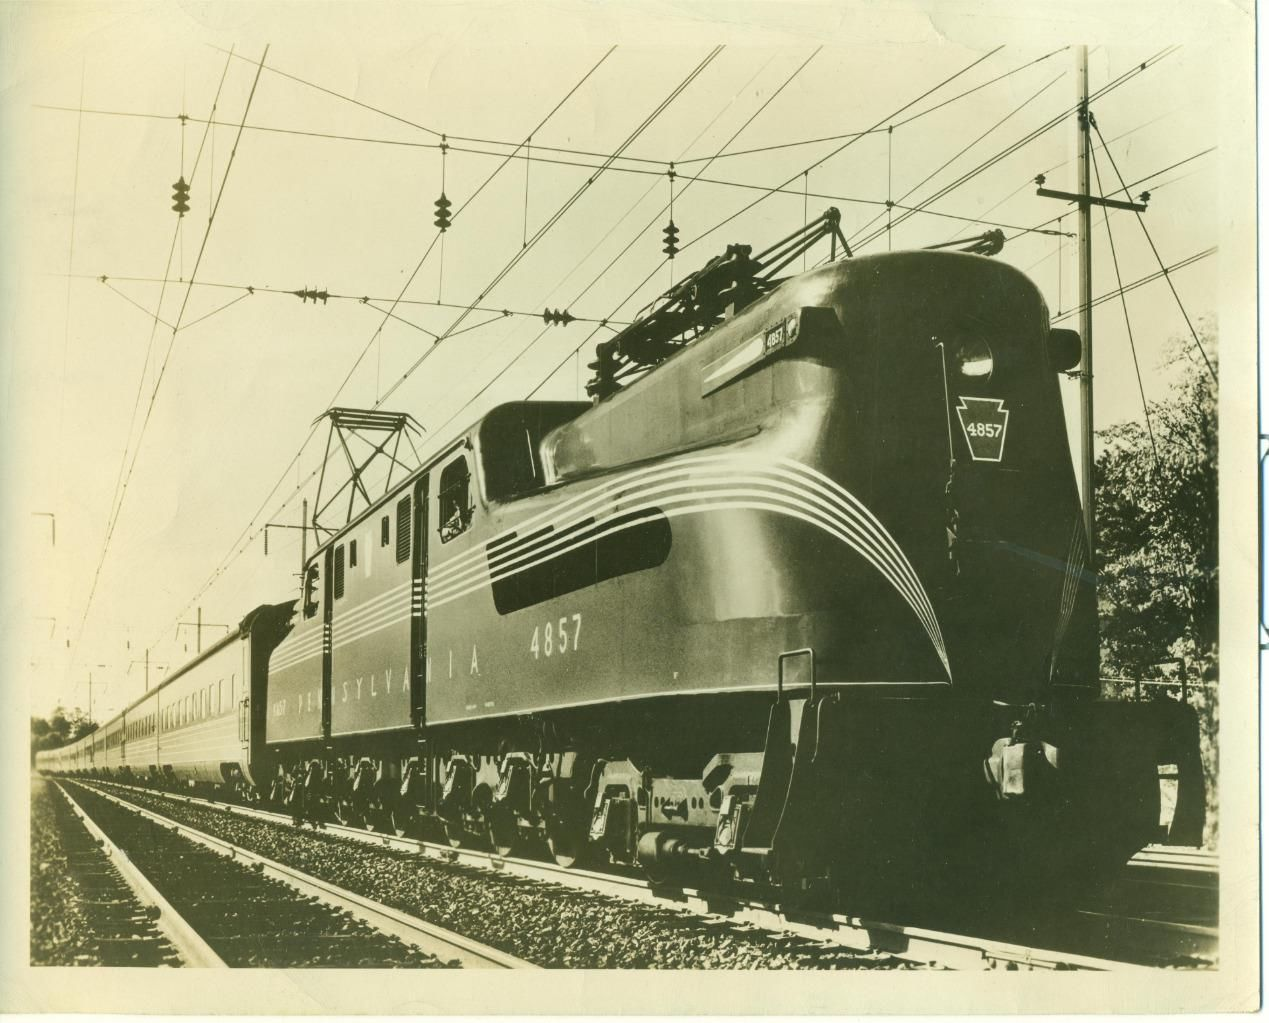 1948 PHOTO PENNSYLVANIA RR GG 1 LOCOMOTIVE 4857